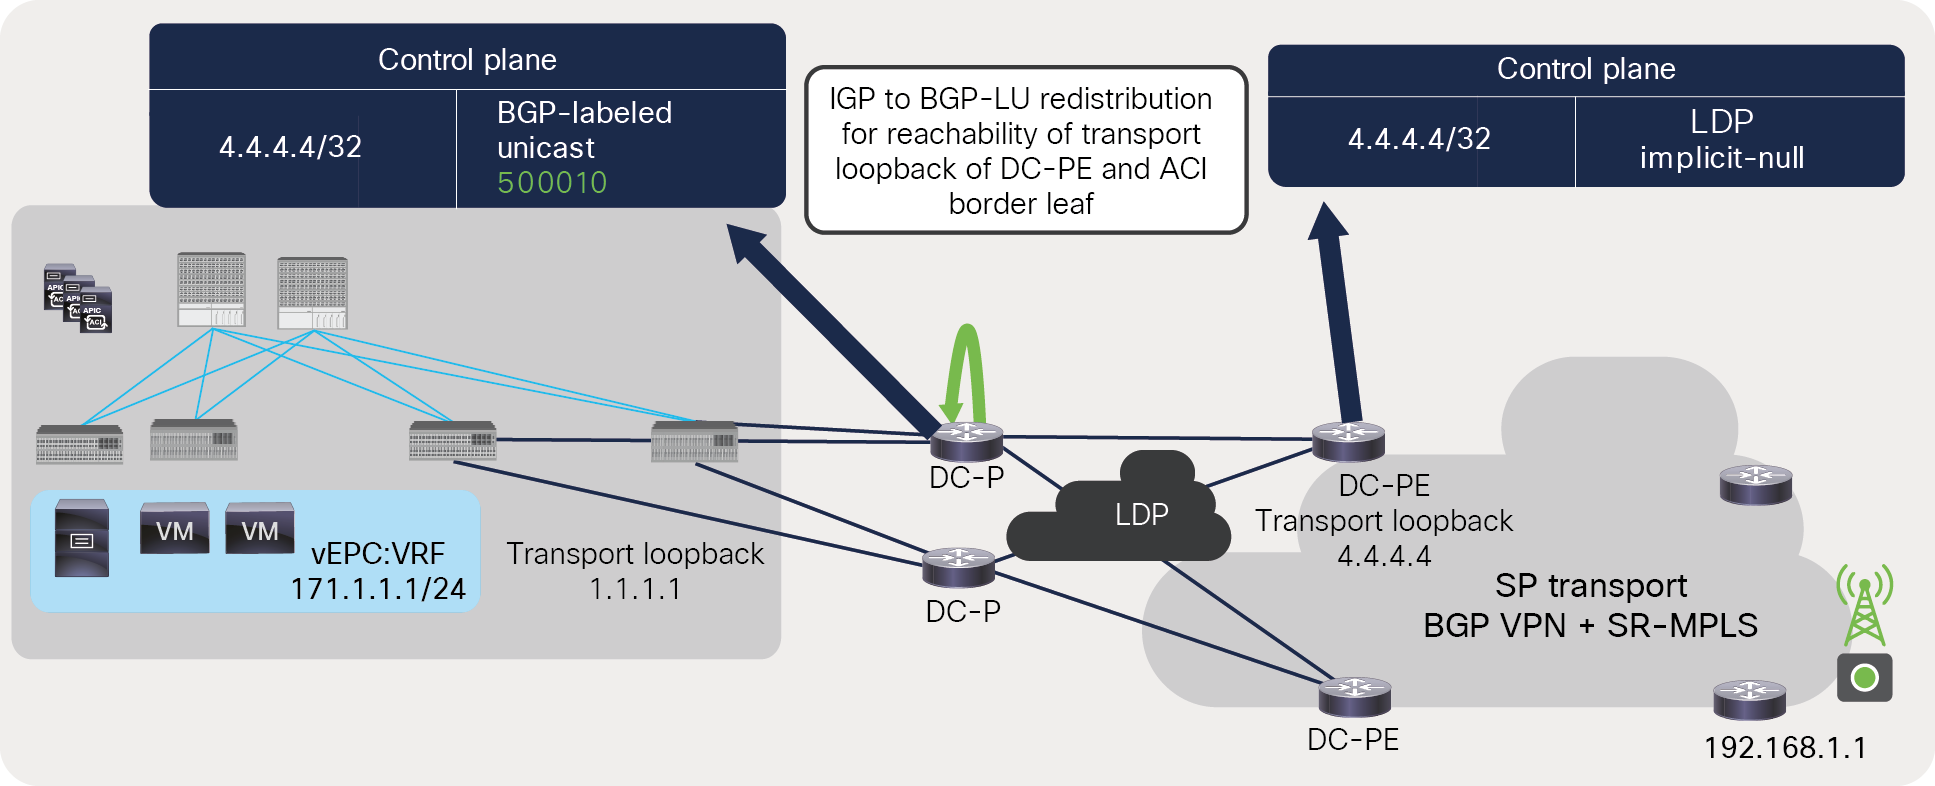 Label advertisement for DC-PE's transport loopback across MPLS LDP network